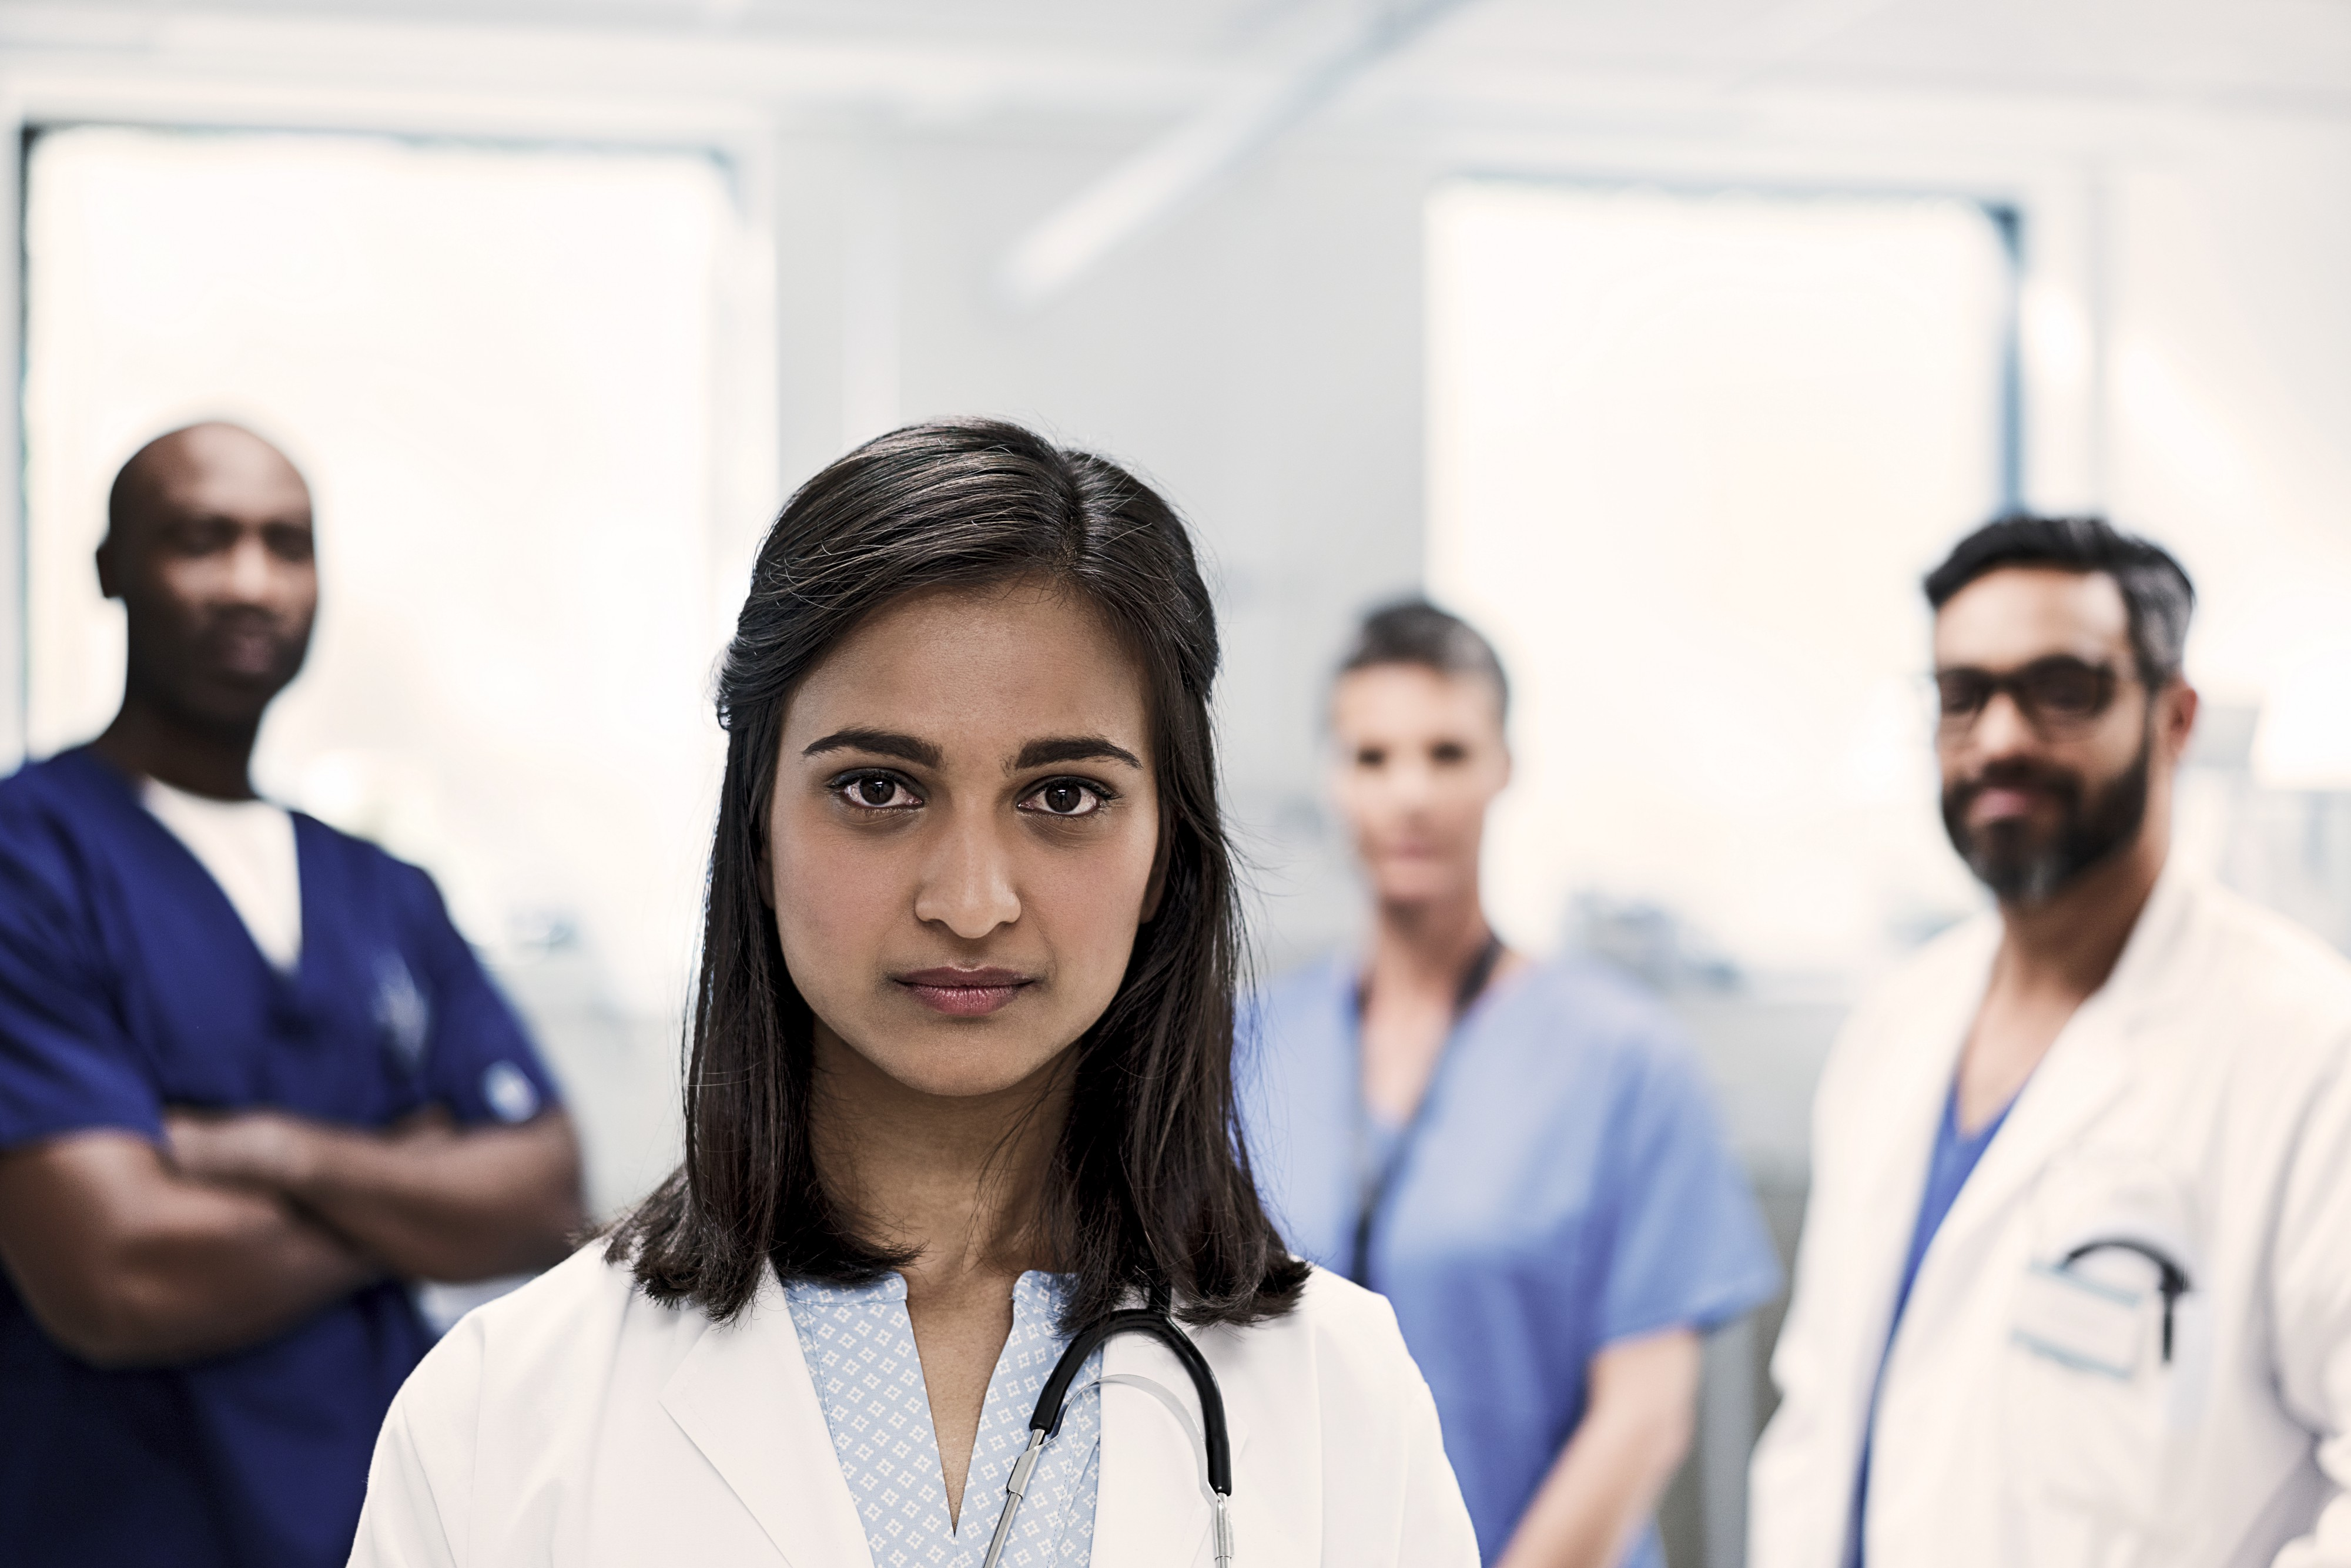 4 Physician Personality Types and How to Manage Them